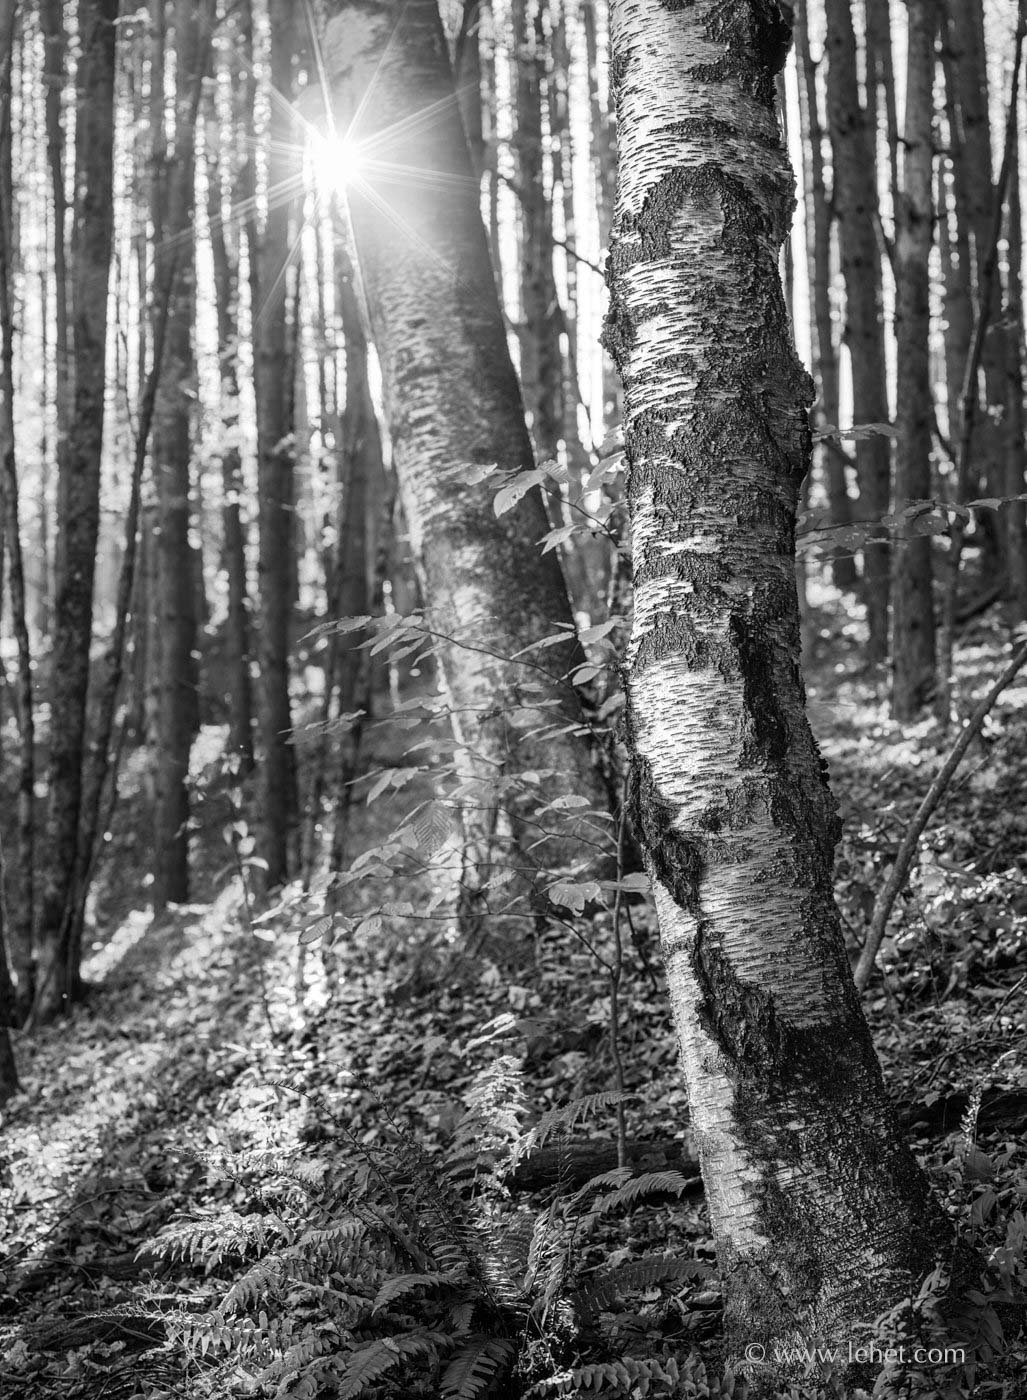 Black and White Birches in Fall Woods, Sunstar